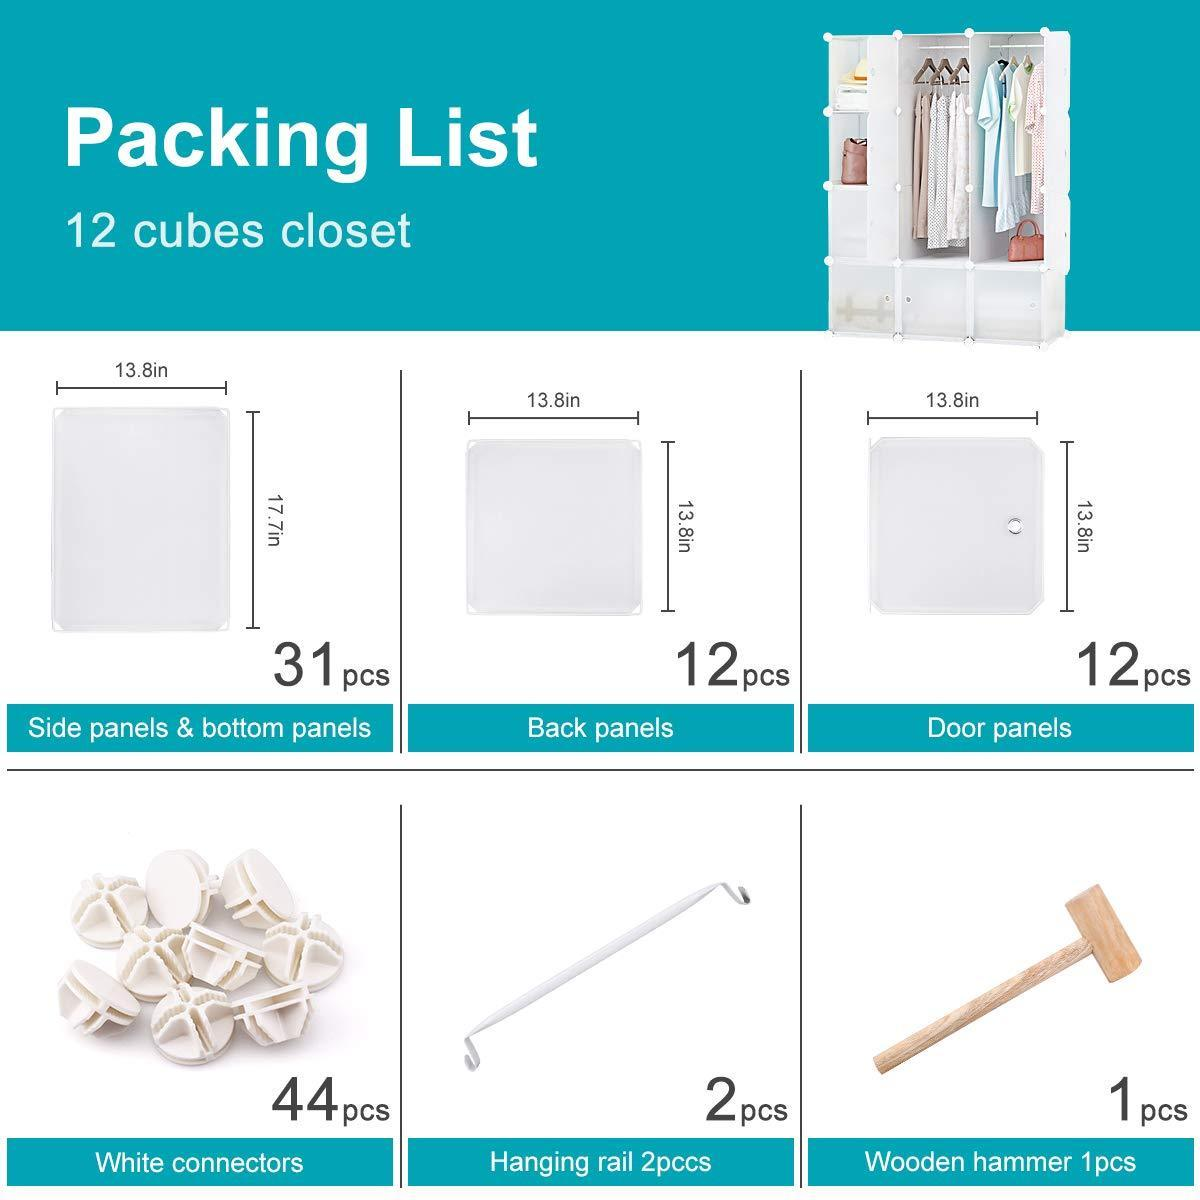 Explore honey home modular storage cube closet organizers portable plastic diy wardrobes cabinet shelving with easy closed doors for bedroom office kitchen garage 12 cubes white